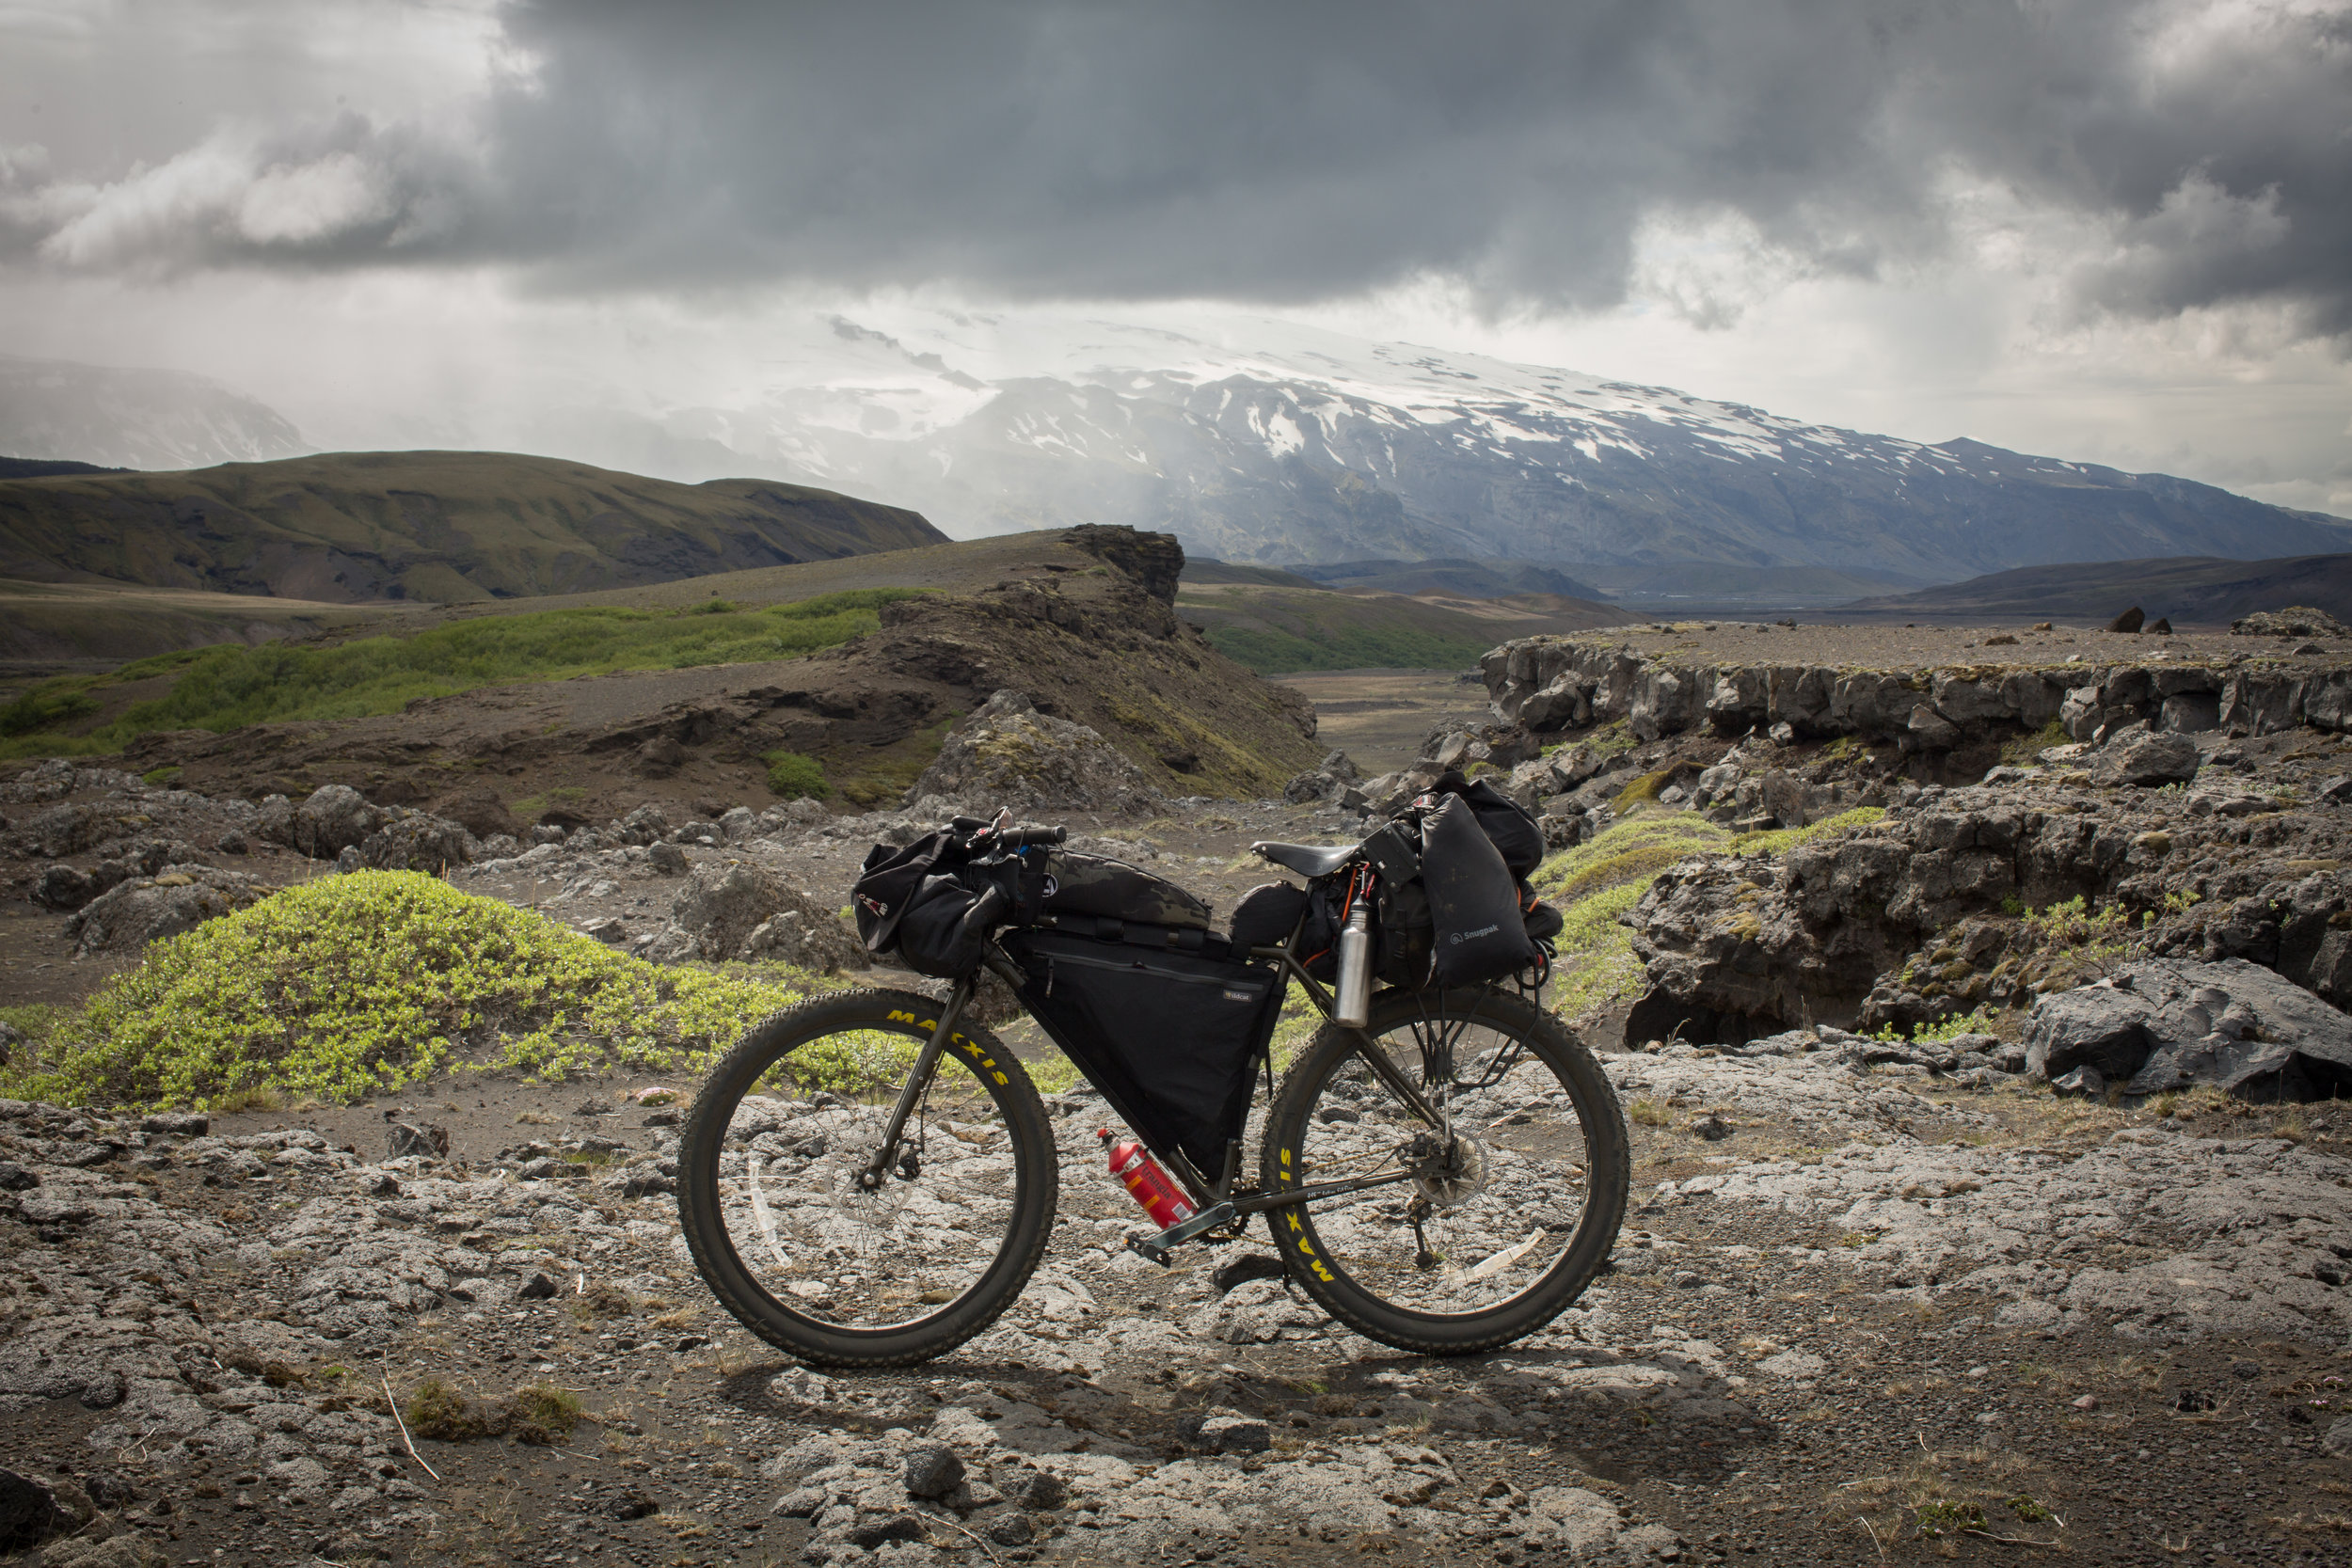 bikepacking, bikepacking blog, bikepacking gear, bikepacking routes, bicycle touring, bicycle touring blog, bicycle touring apocalypse, cyclist, jack mac, jack macgowan, van life, surly, surly bikes, 29er, fat bike, iceland, visit iceland, Laugavegur, Laugavegur hiking trail, wildcat gear, rvelate designs, atm handmade goods, j paks, j paks farvapak, trangia, car sick designs, car sick designs handee randee, get wild matty